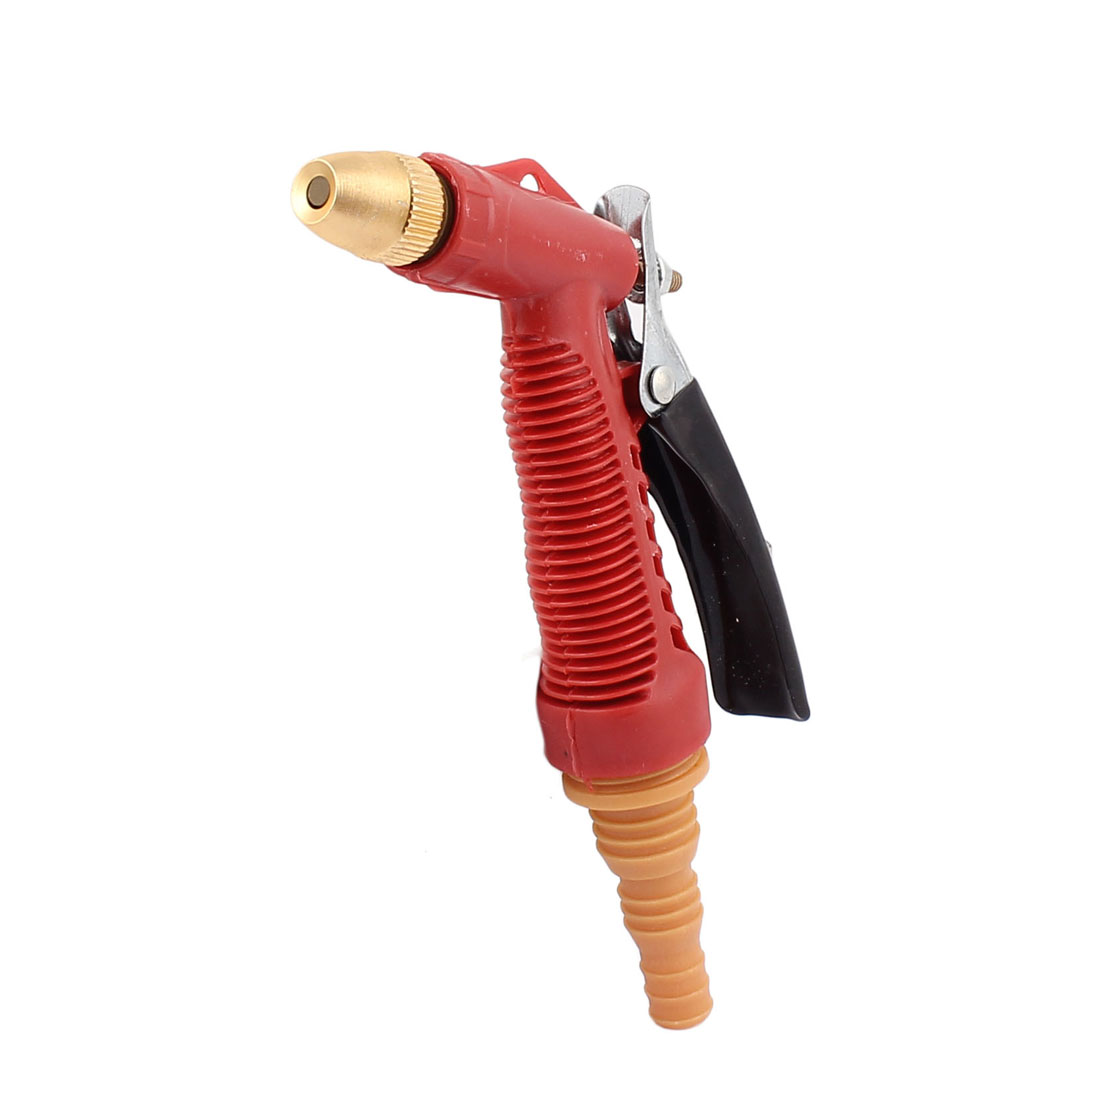 Metal High Pressure Garden Motorcycle Auto Car Washing Gardening Water Gun Sprayer Spray Tool